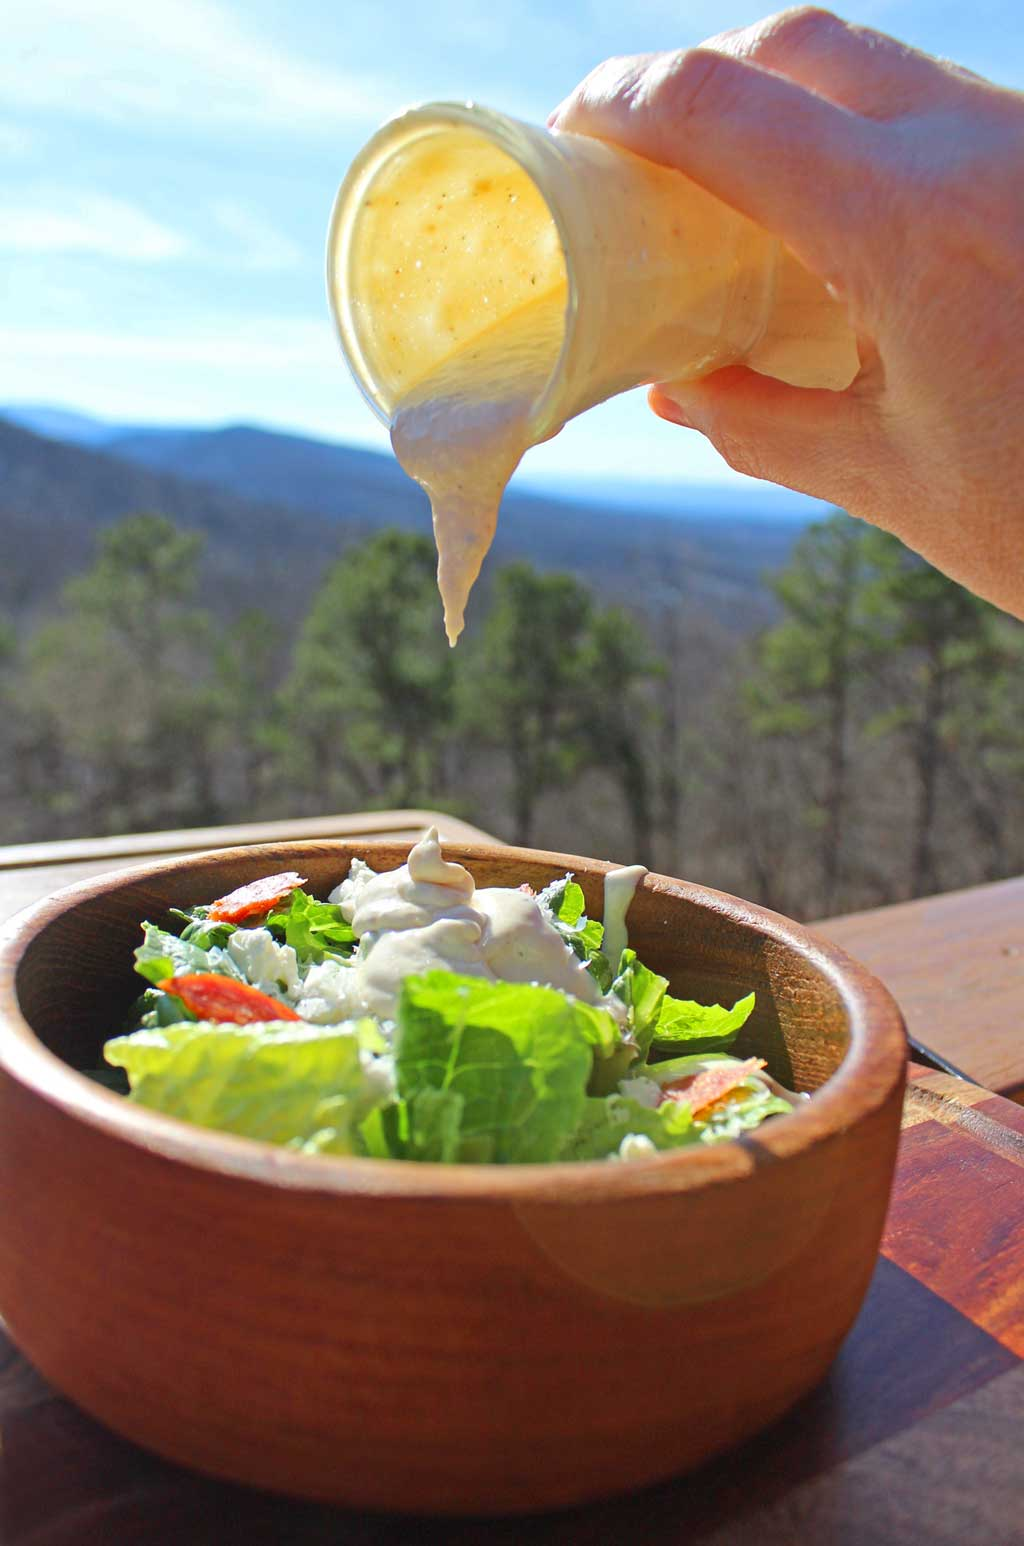 This creamy Caesar dressing is packed with big bold flavor.It's creamy, smooth and will turnanyone into a Caesar salad fan! Learn how to make your own!